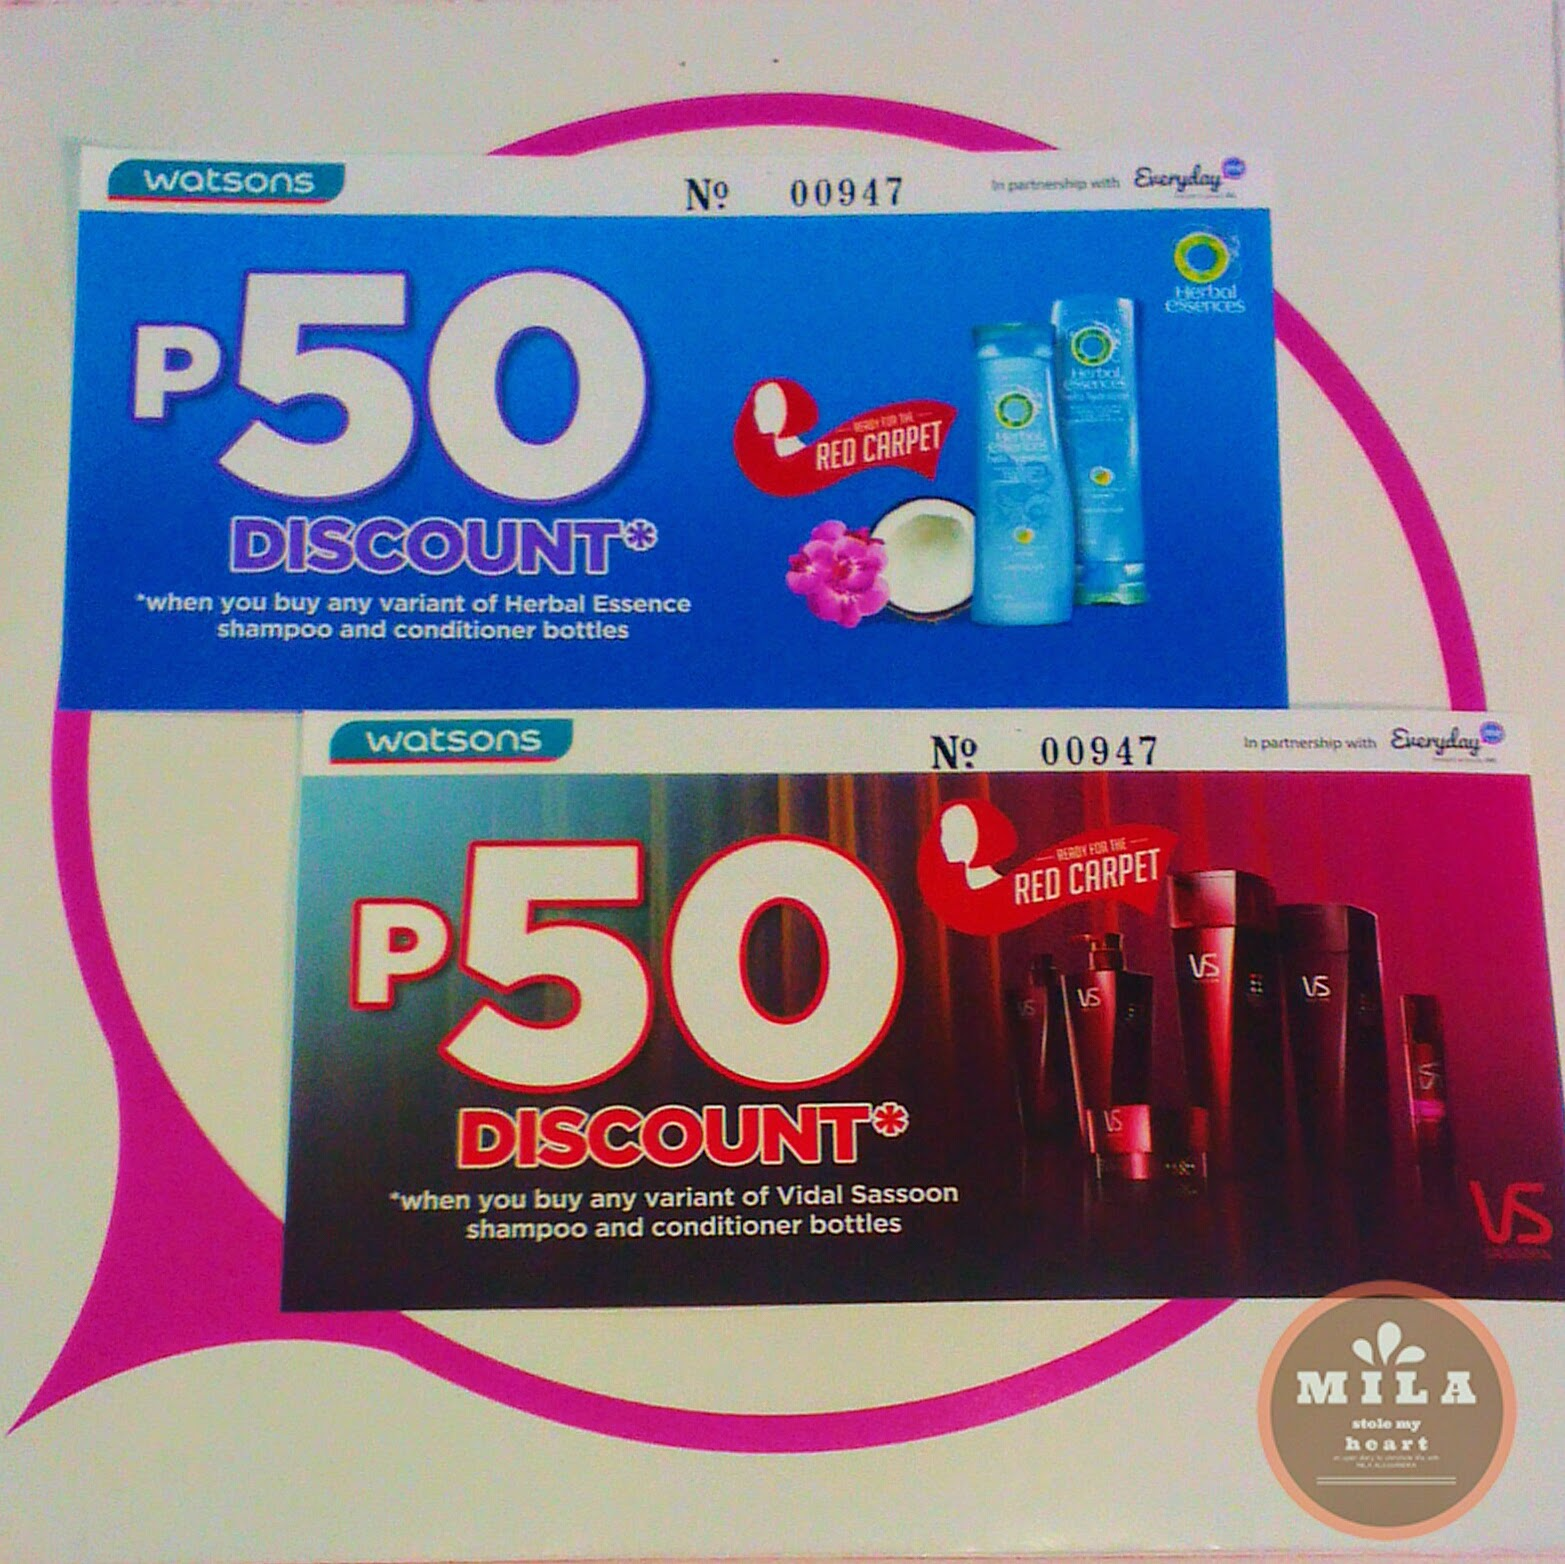 Herbal Essense and Vidal Sasson Discount Vouchers